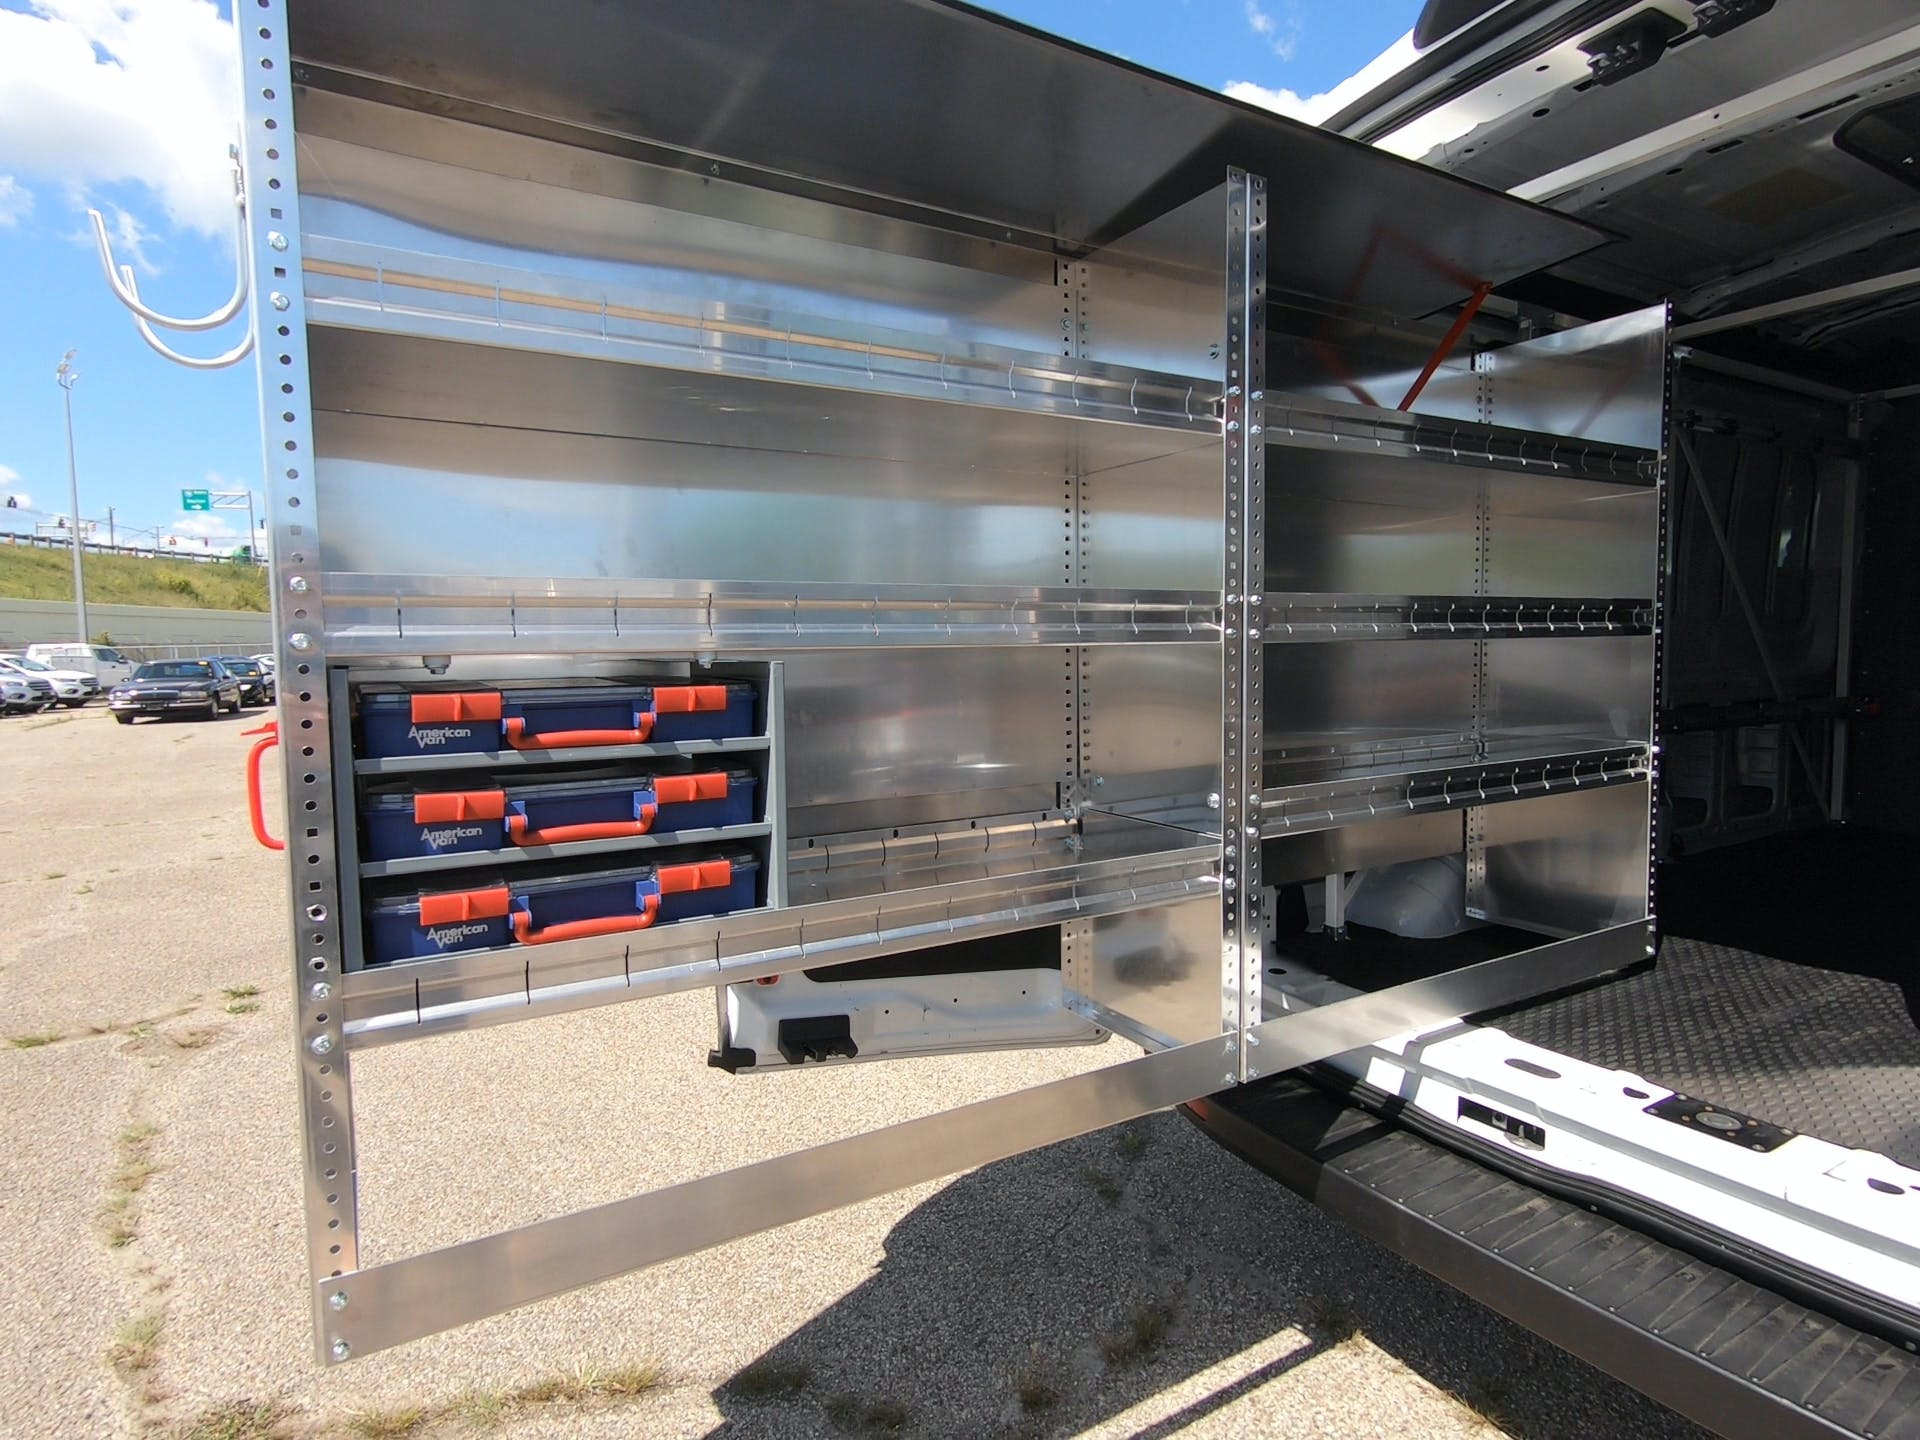 Cargo Van Shelving for large or small businesses